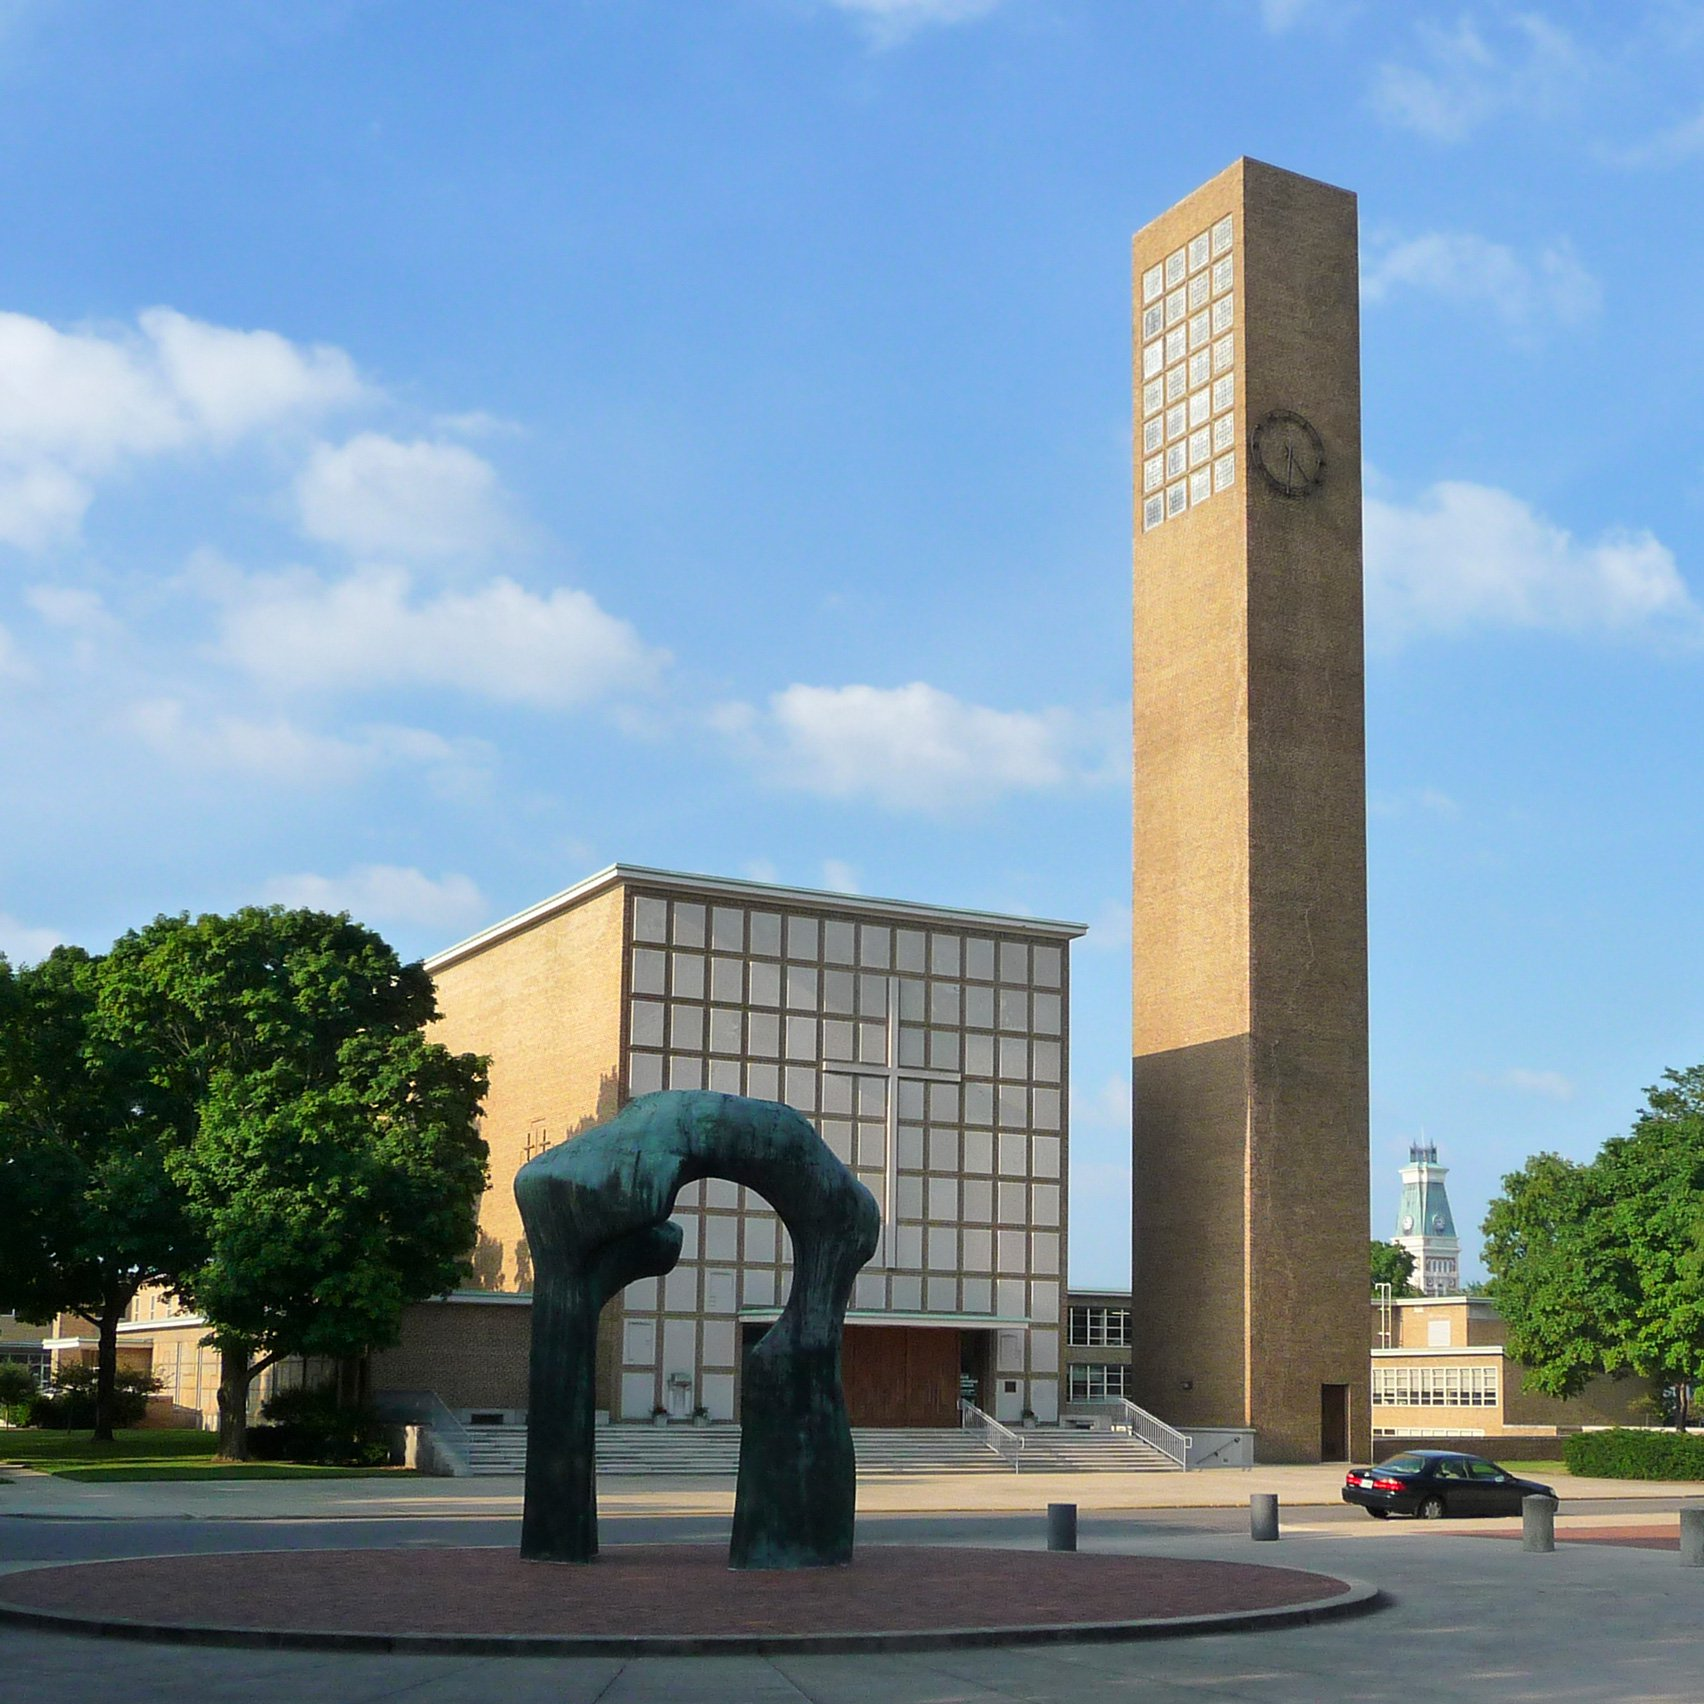 11 important modernist buildings in Columbus, Indiana